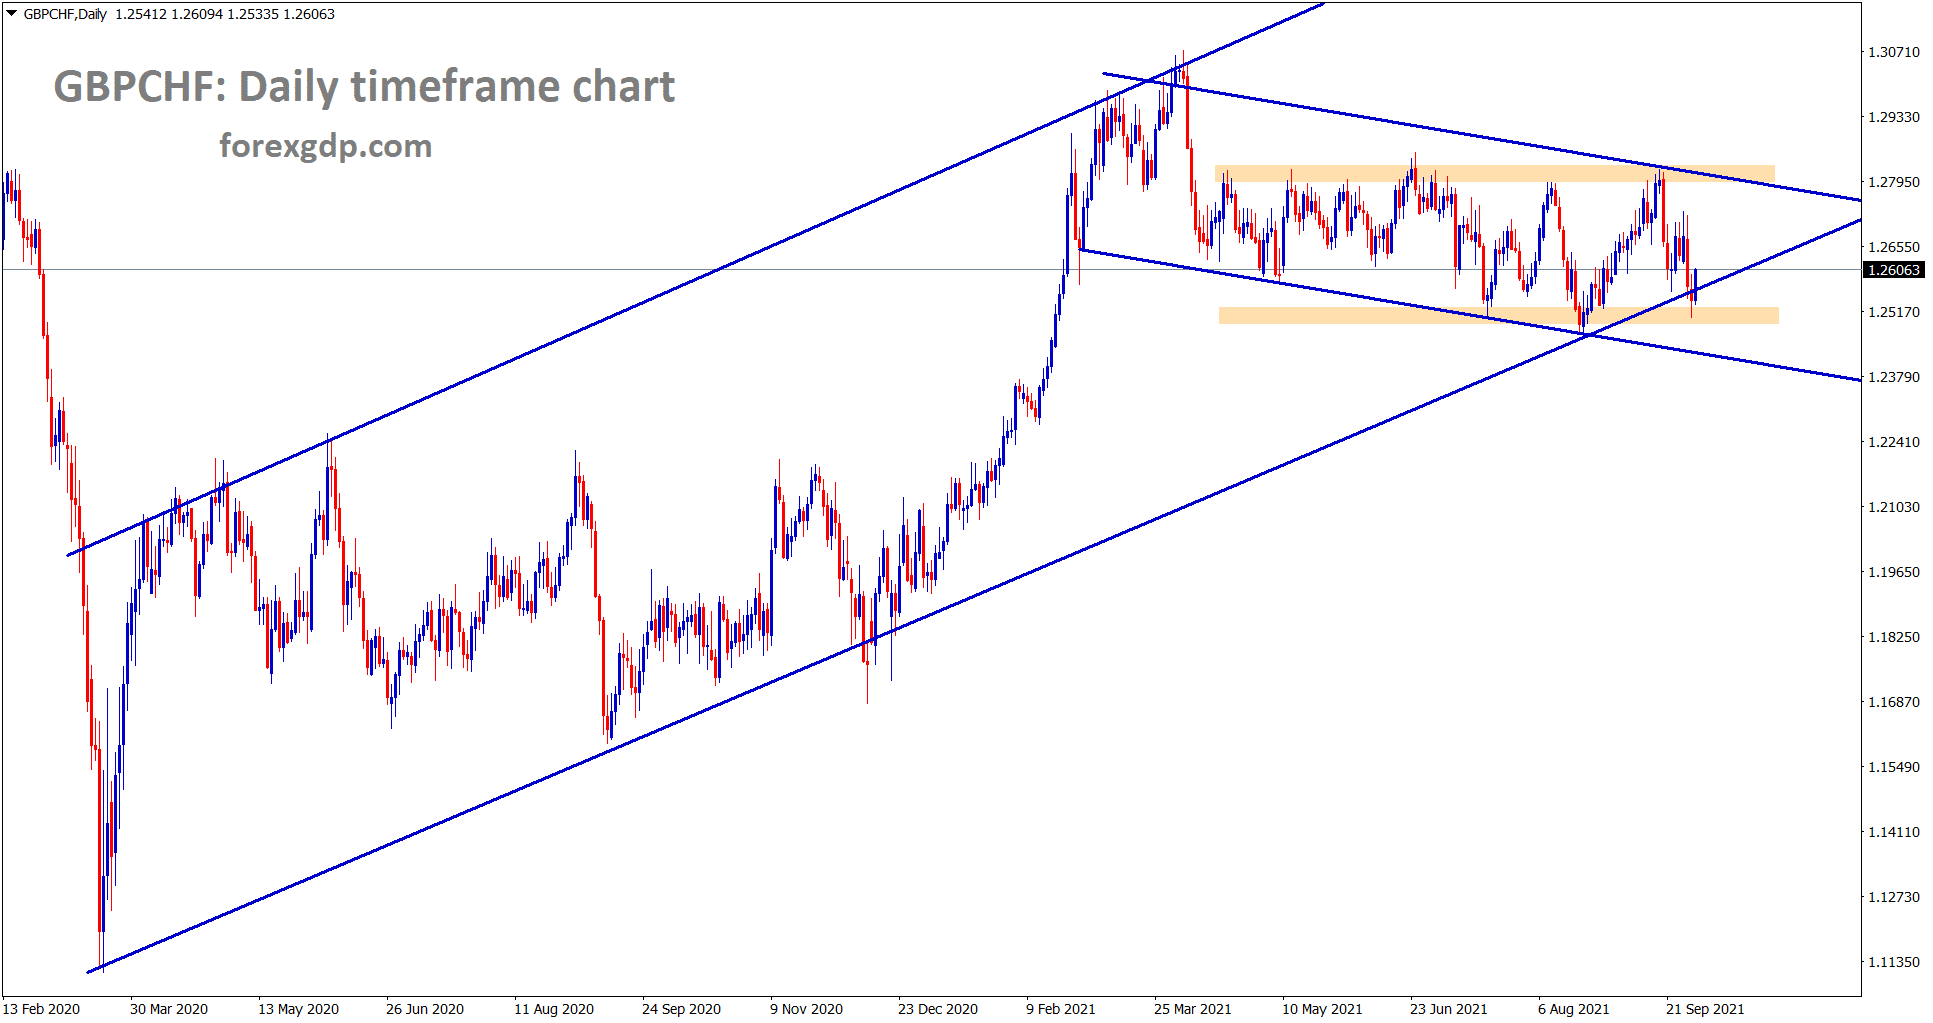 GBPCHF is rebounding after hitting the major higher low level of an uptrend line